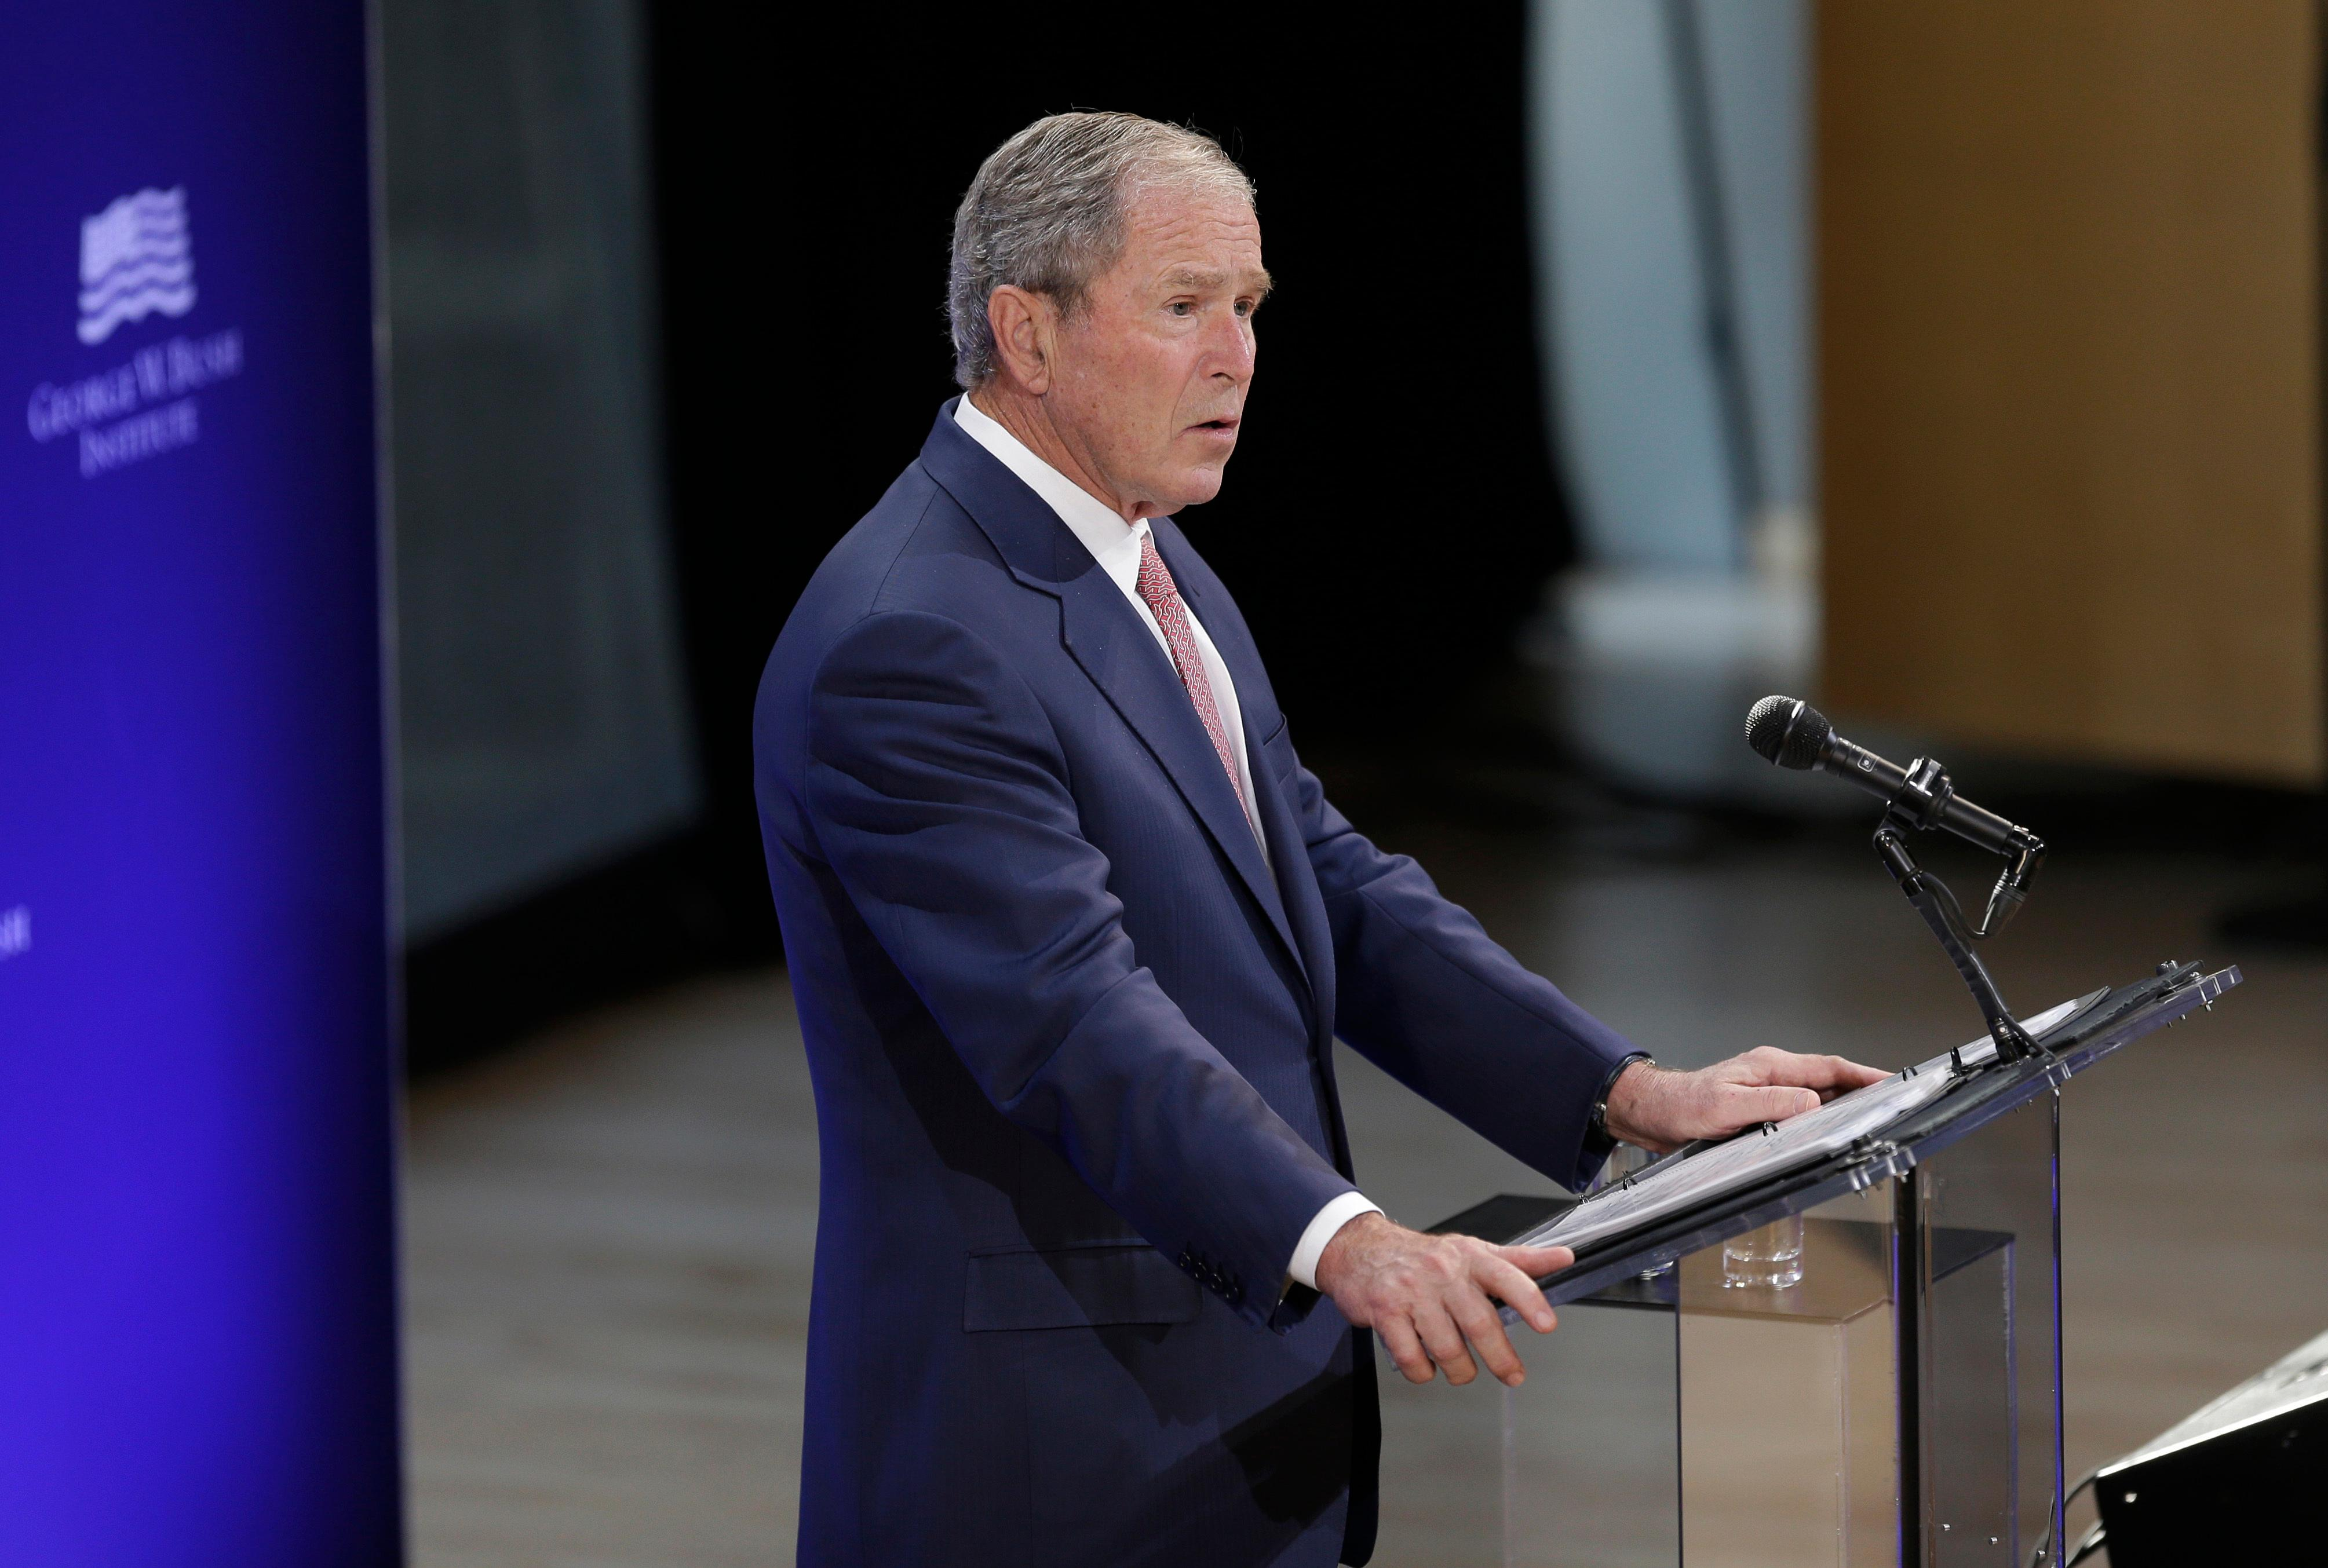 Former U.S. President George W. Bush speaks at a forum sponsored by the George W. Bush Institute in New York, Thursday, Oct. 19, 2017. (AP Photo/Seth Wenig)